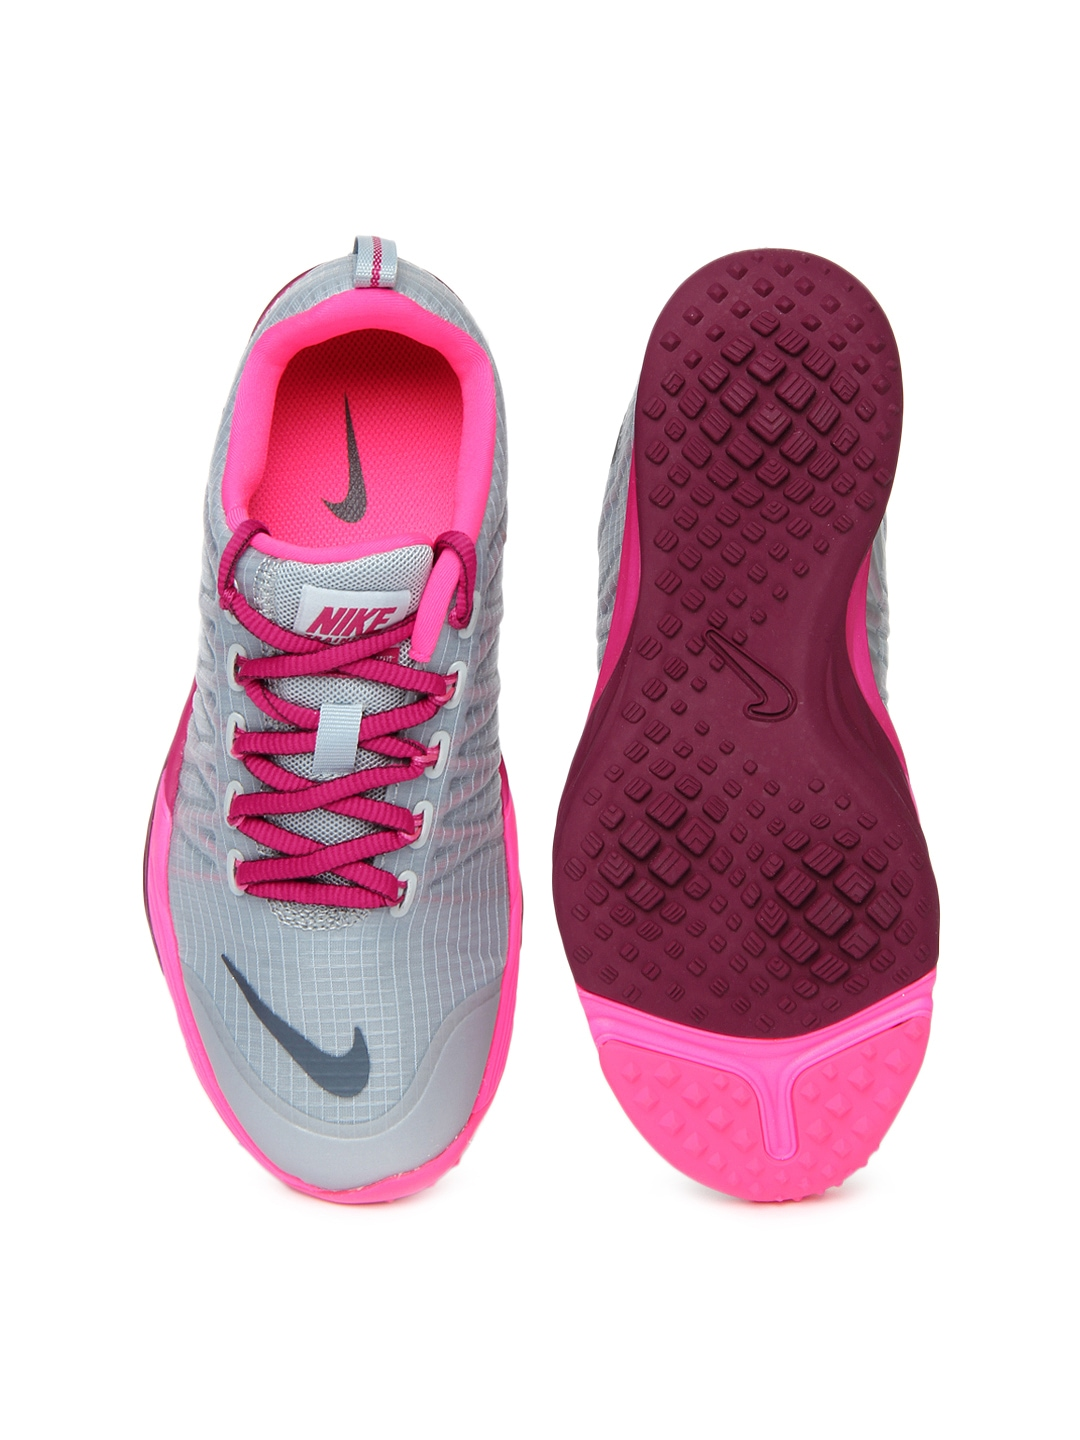 buy online 911e6 15192 ... where to buy buty wmns nike lunar cross element dbd5e 31660